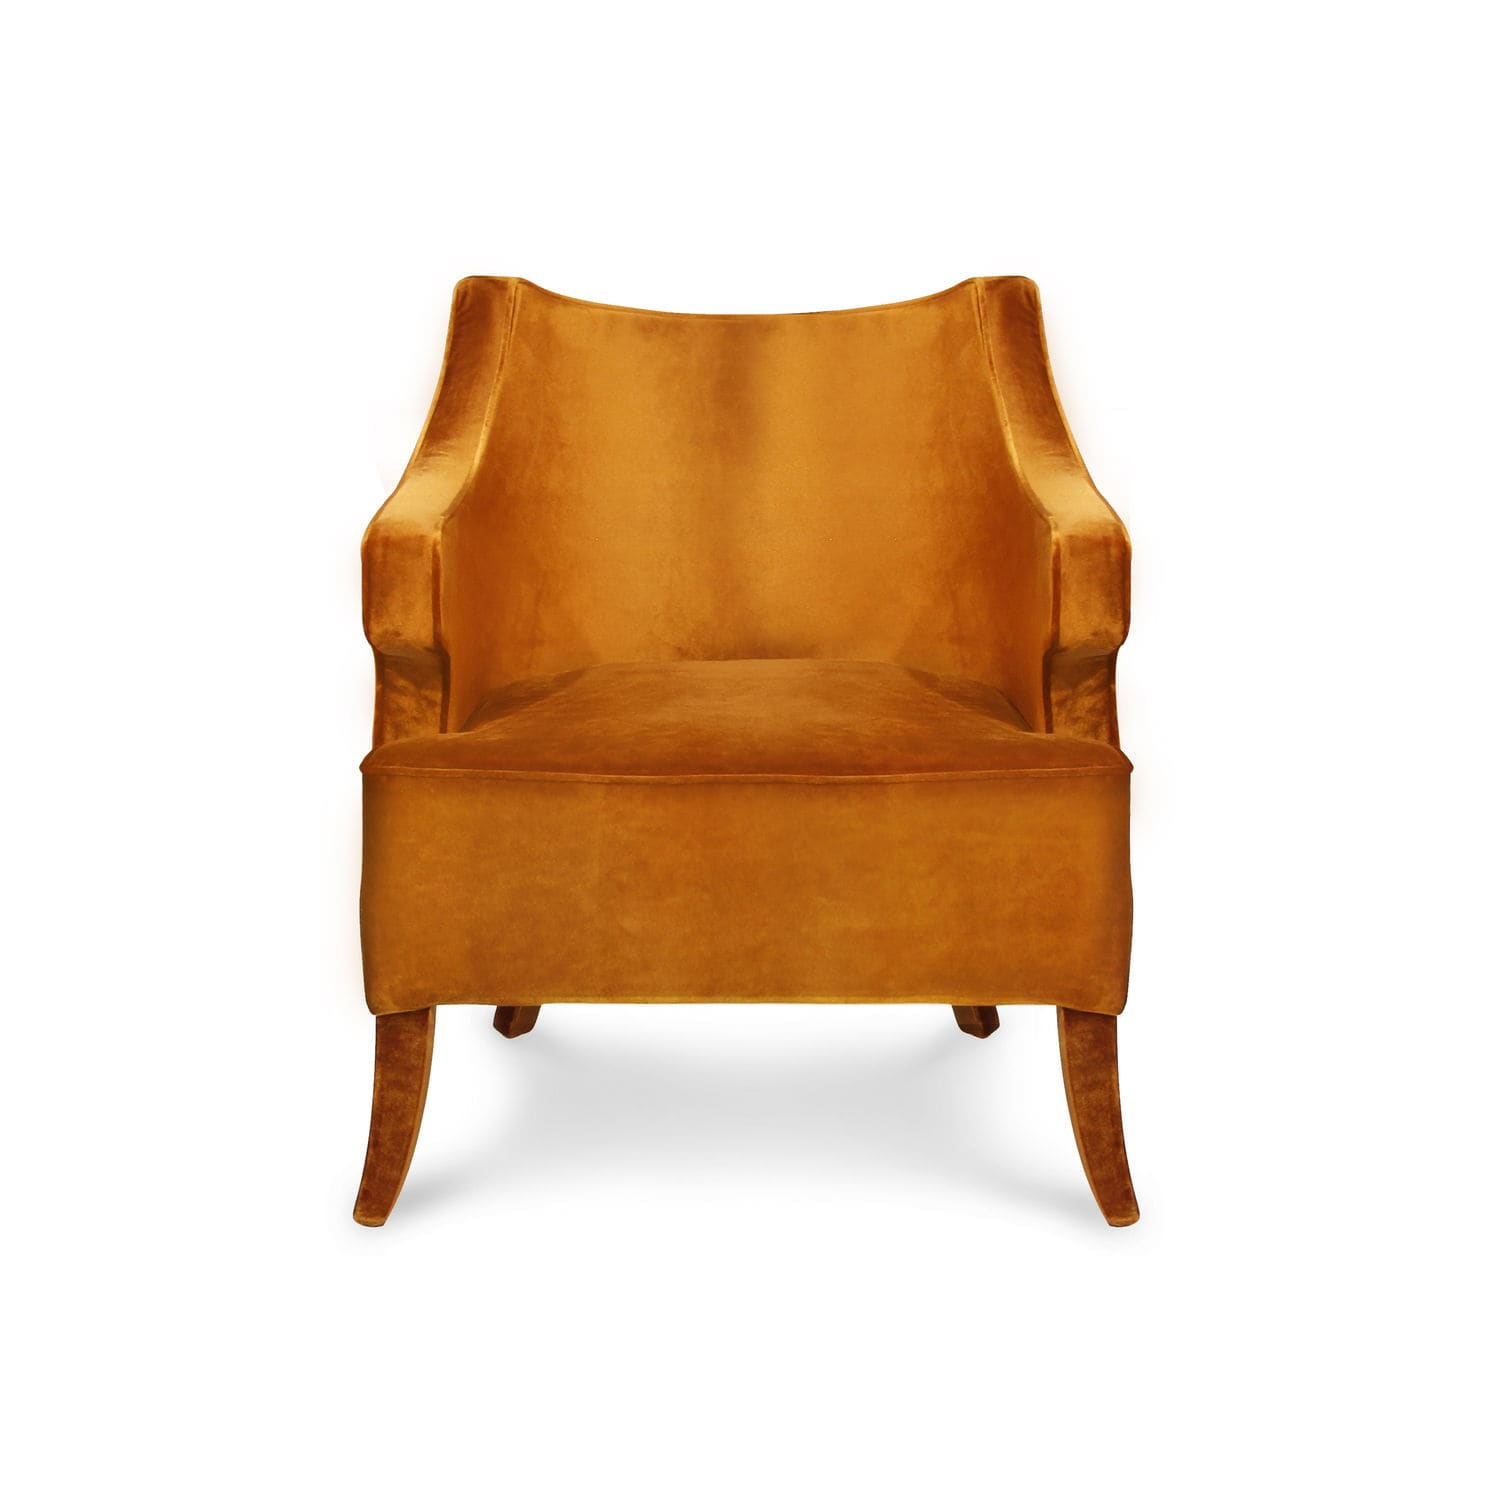 Designer Sessel Orange Moderner Sessel Samt Orange Java Brabbu Design Forces